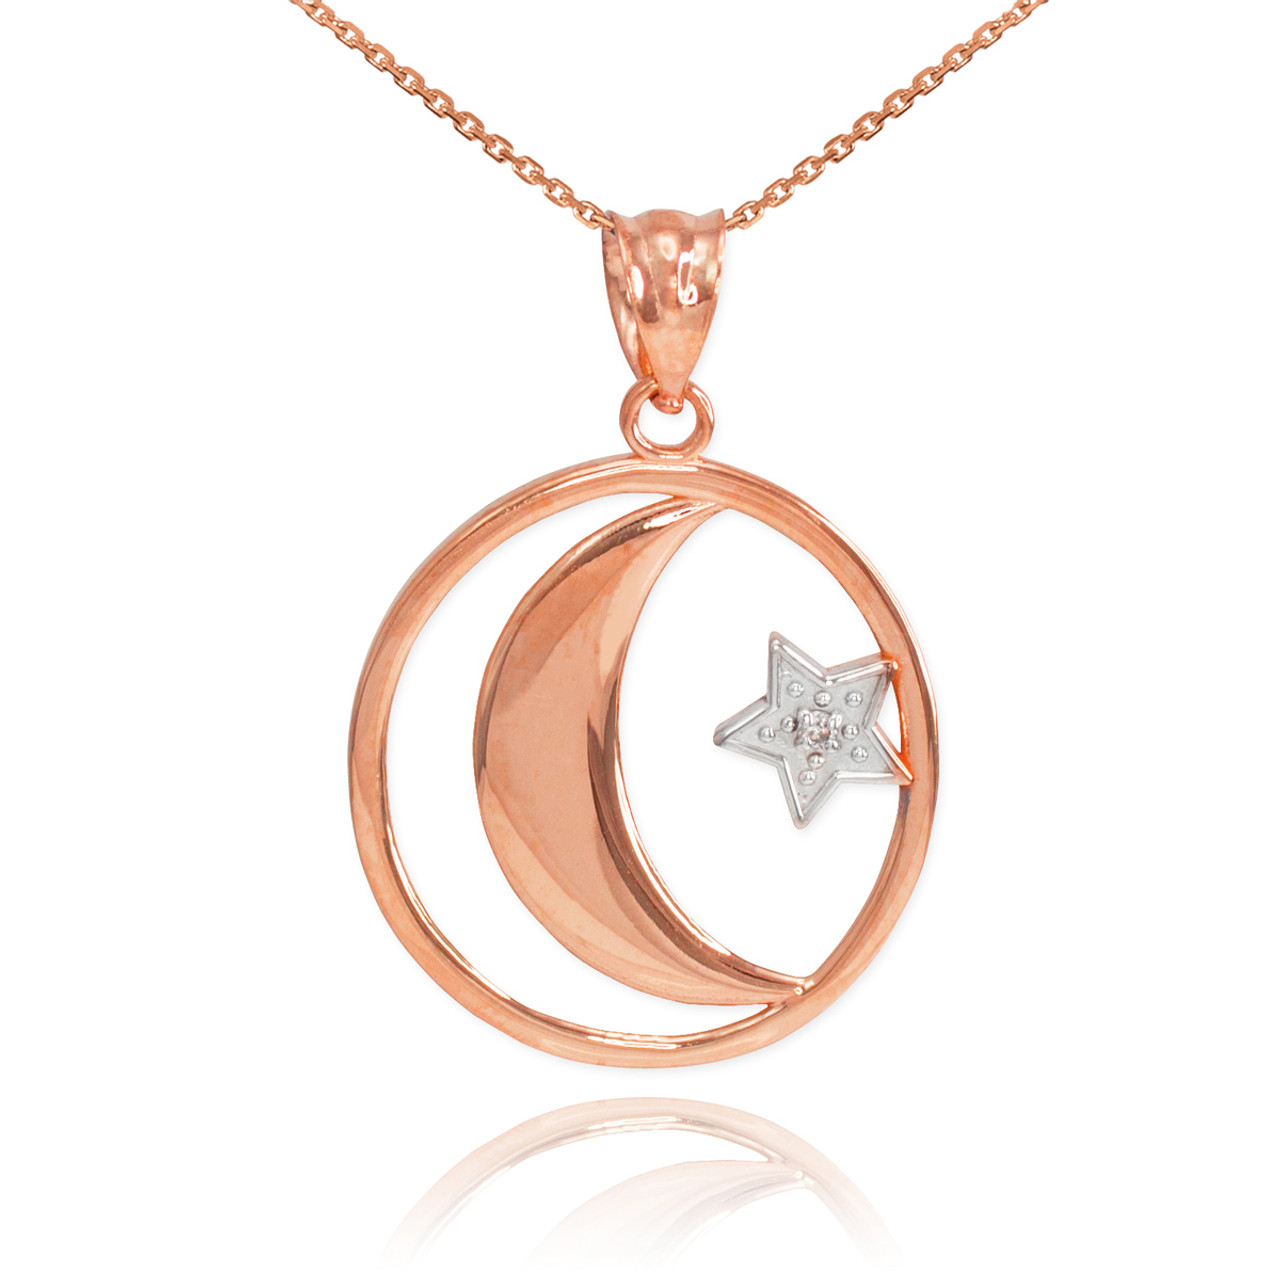 Rose gold crescent moon with diamond star islamic pendant necklace aloadofball Choice Image